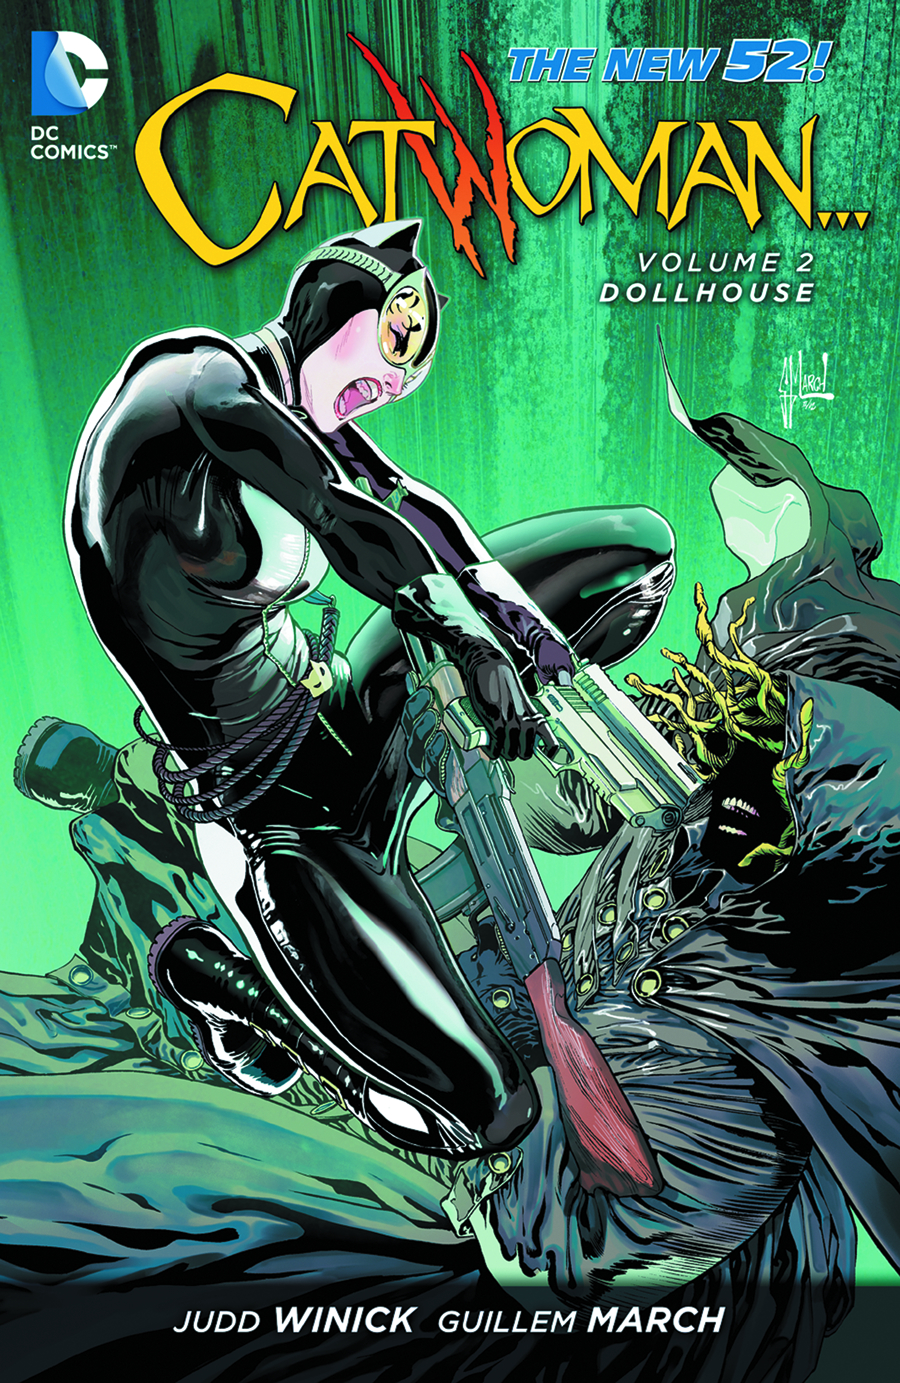 CATWOMAN TP VOL 02 DOLLHOUSE